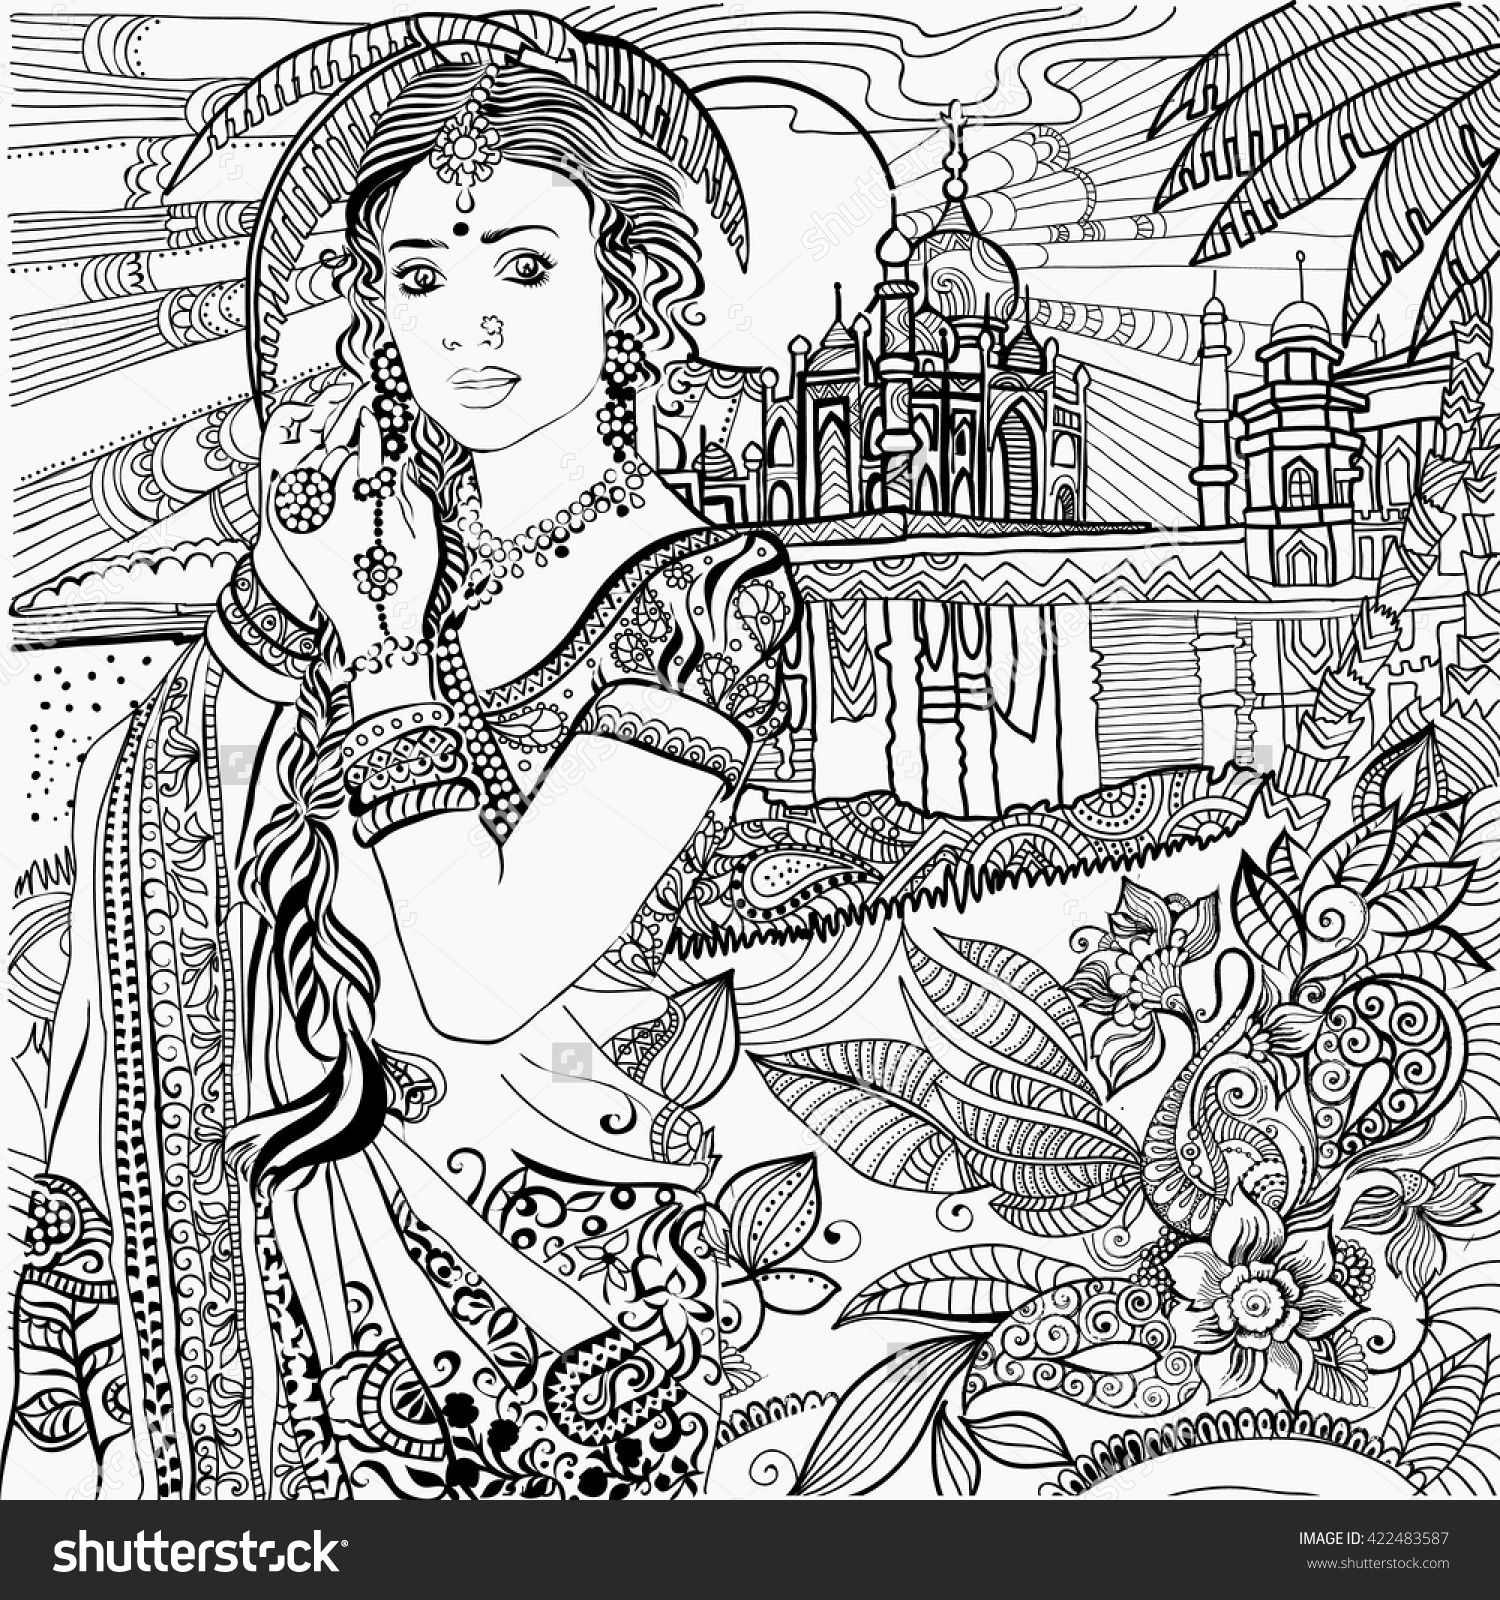 Indian Woman Coloring Page Coloring Pages People Coloring Pages